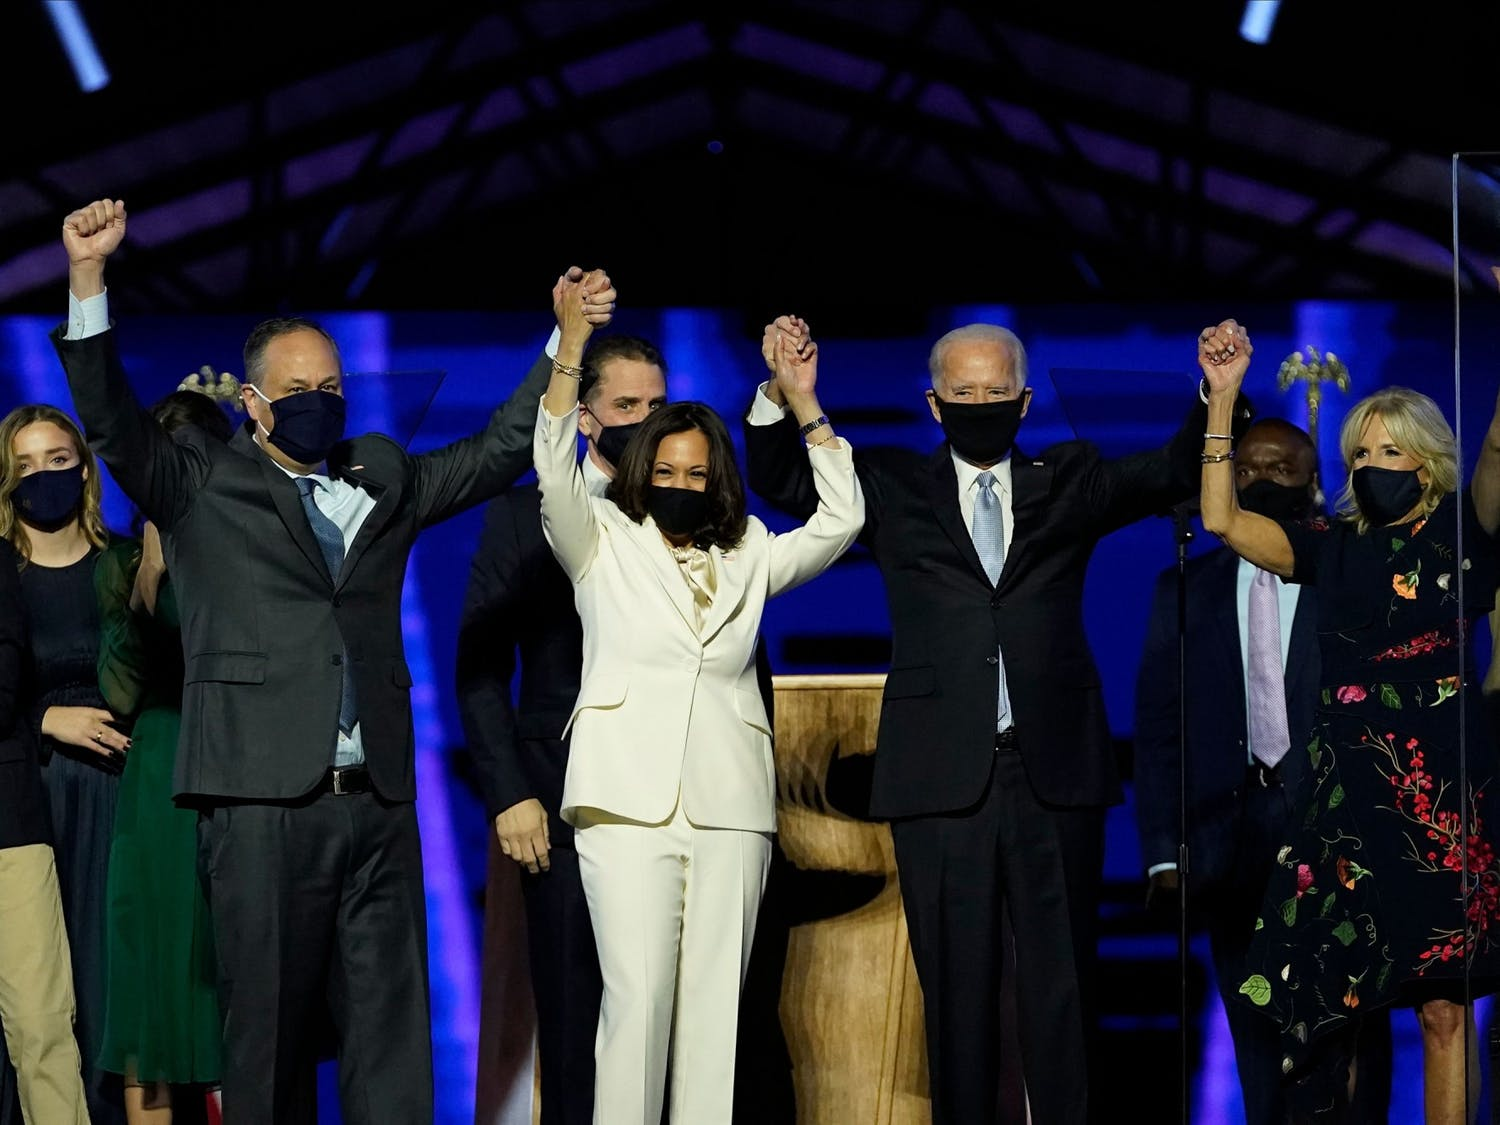 President-elect Joe Biden, Vice President-elect Kamala Harris, and their spouses grasp hands after addressing the nation from the Chase Center on Nov. 7, 2020 in Wilmington, Delaware. Photo courtesy of Andrew Harnik-Pool/Getty Images/TNS